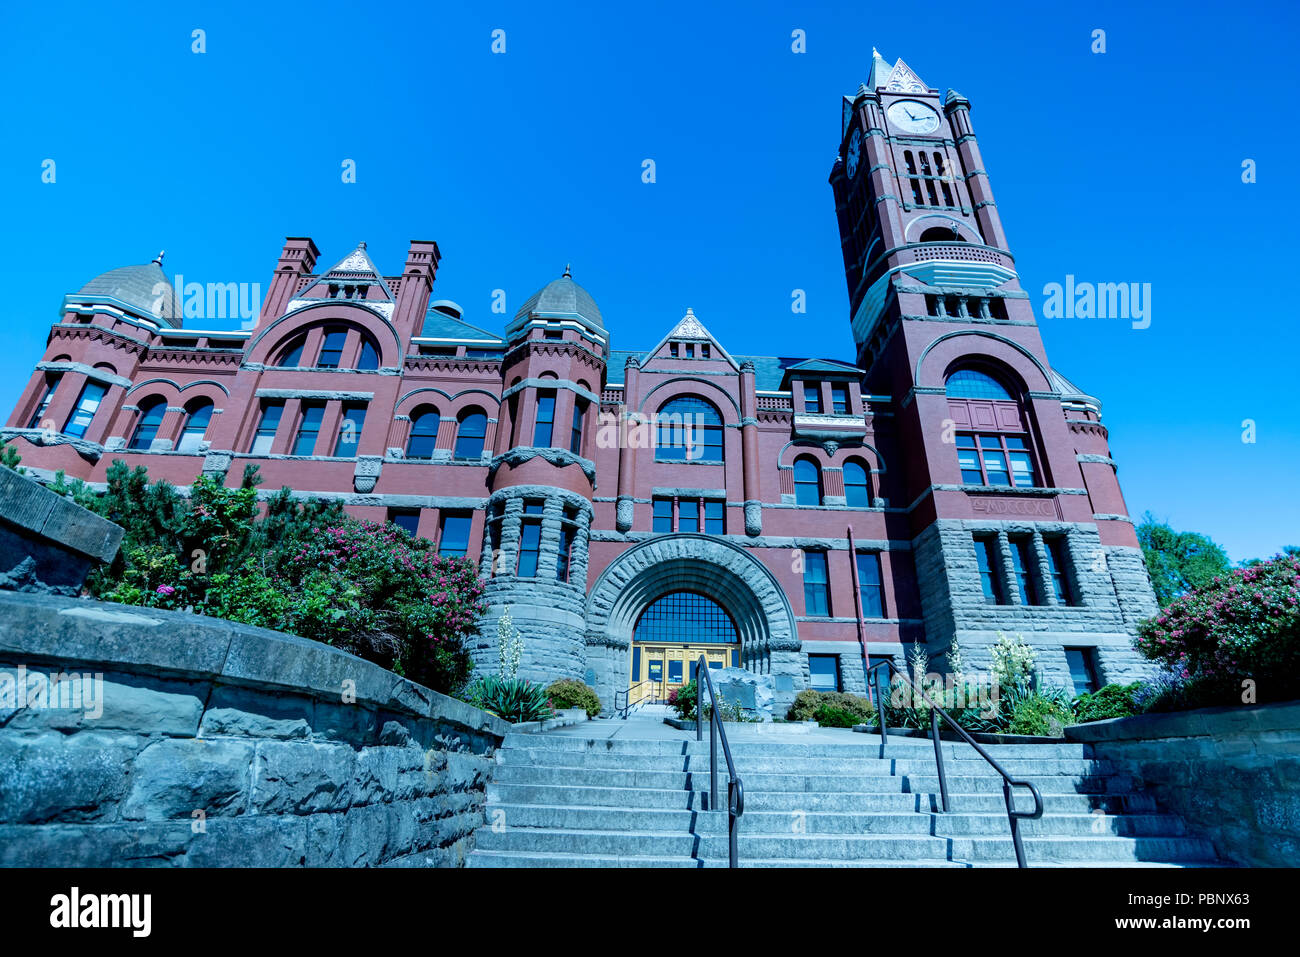 Jefferson County Courthouse 4. Built in red brick Romanesque Revival style in 1892 by Architect W. A. Ritchie. Port Townsend, Washington, USA Stock Photo